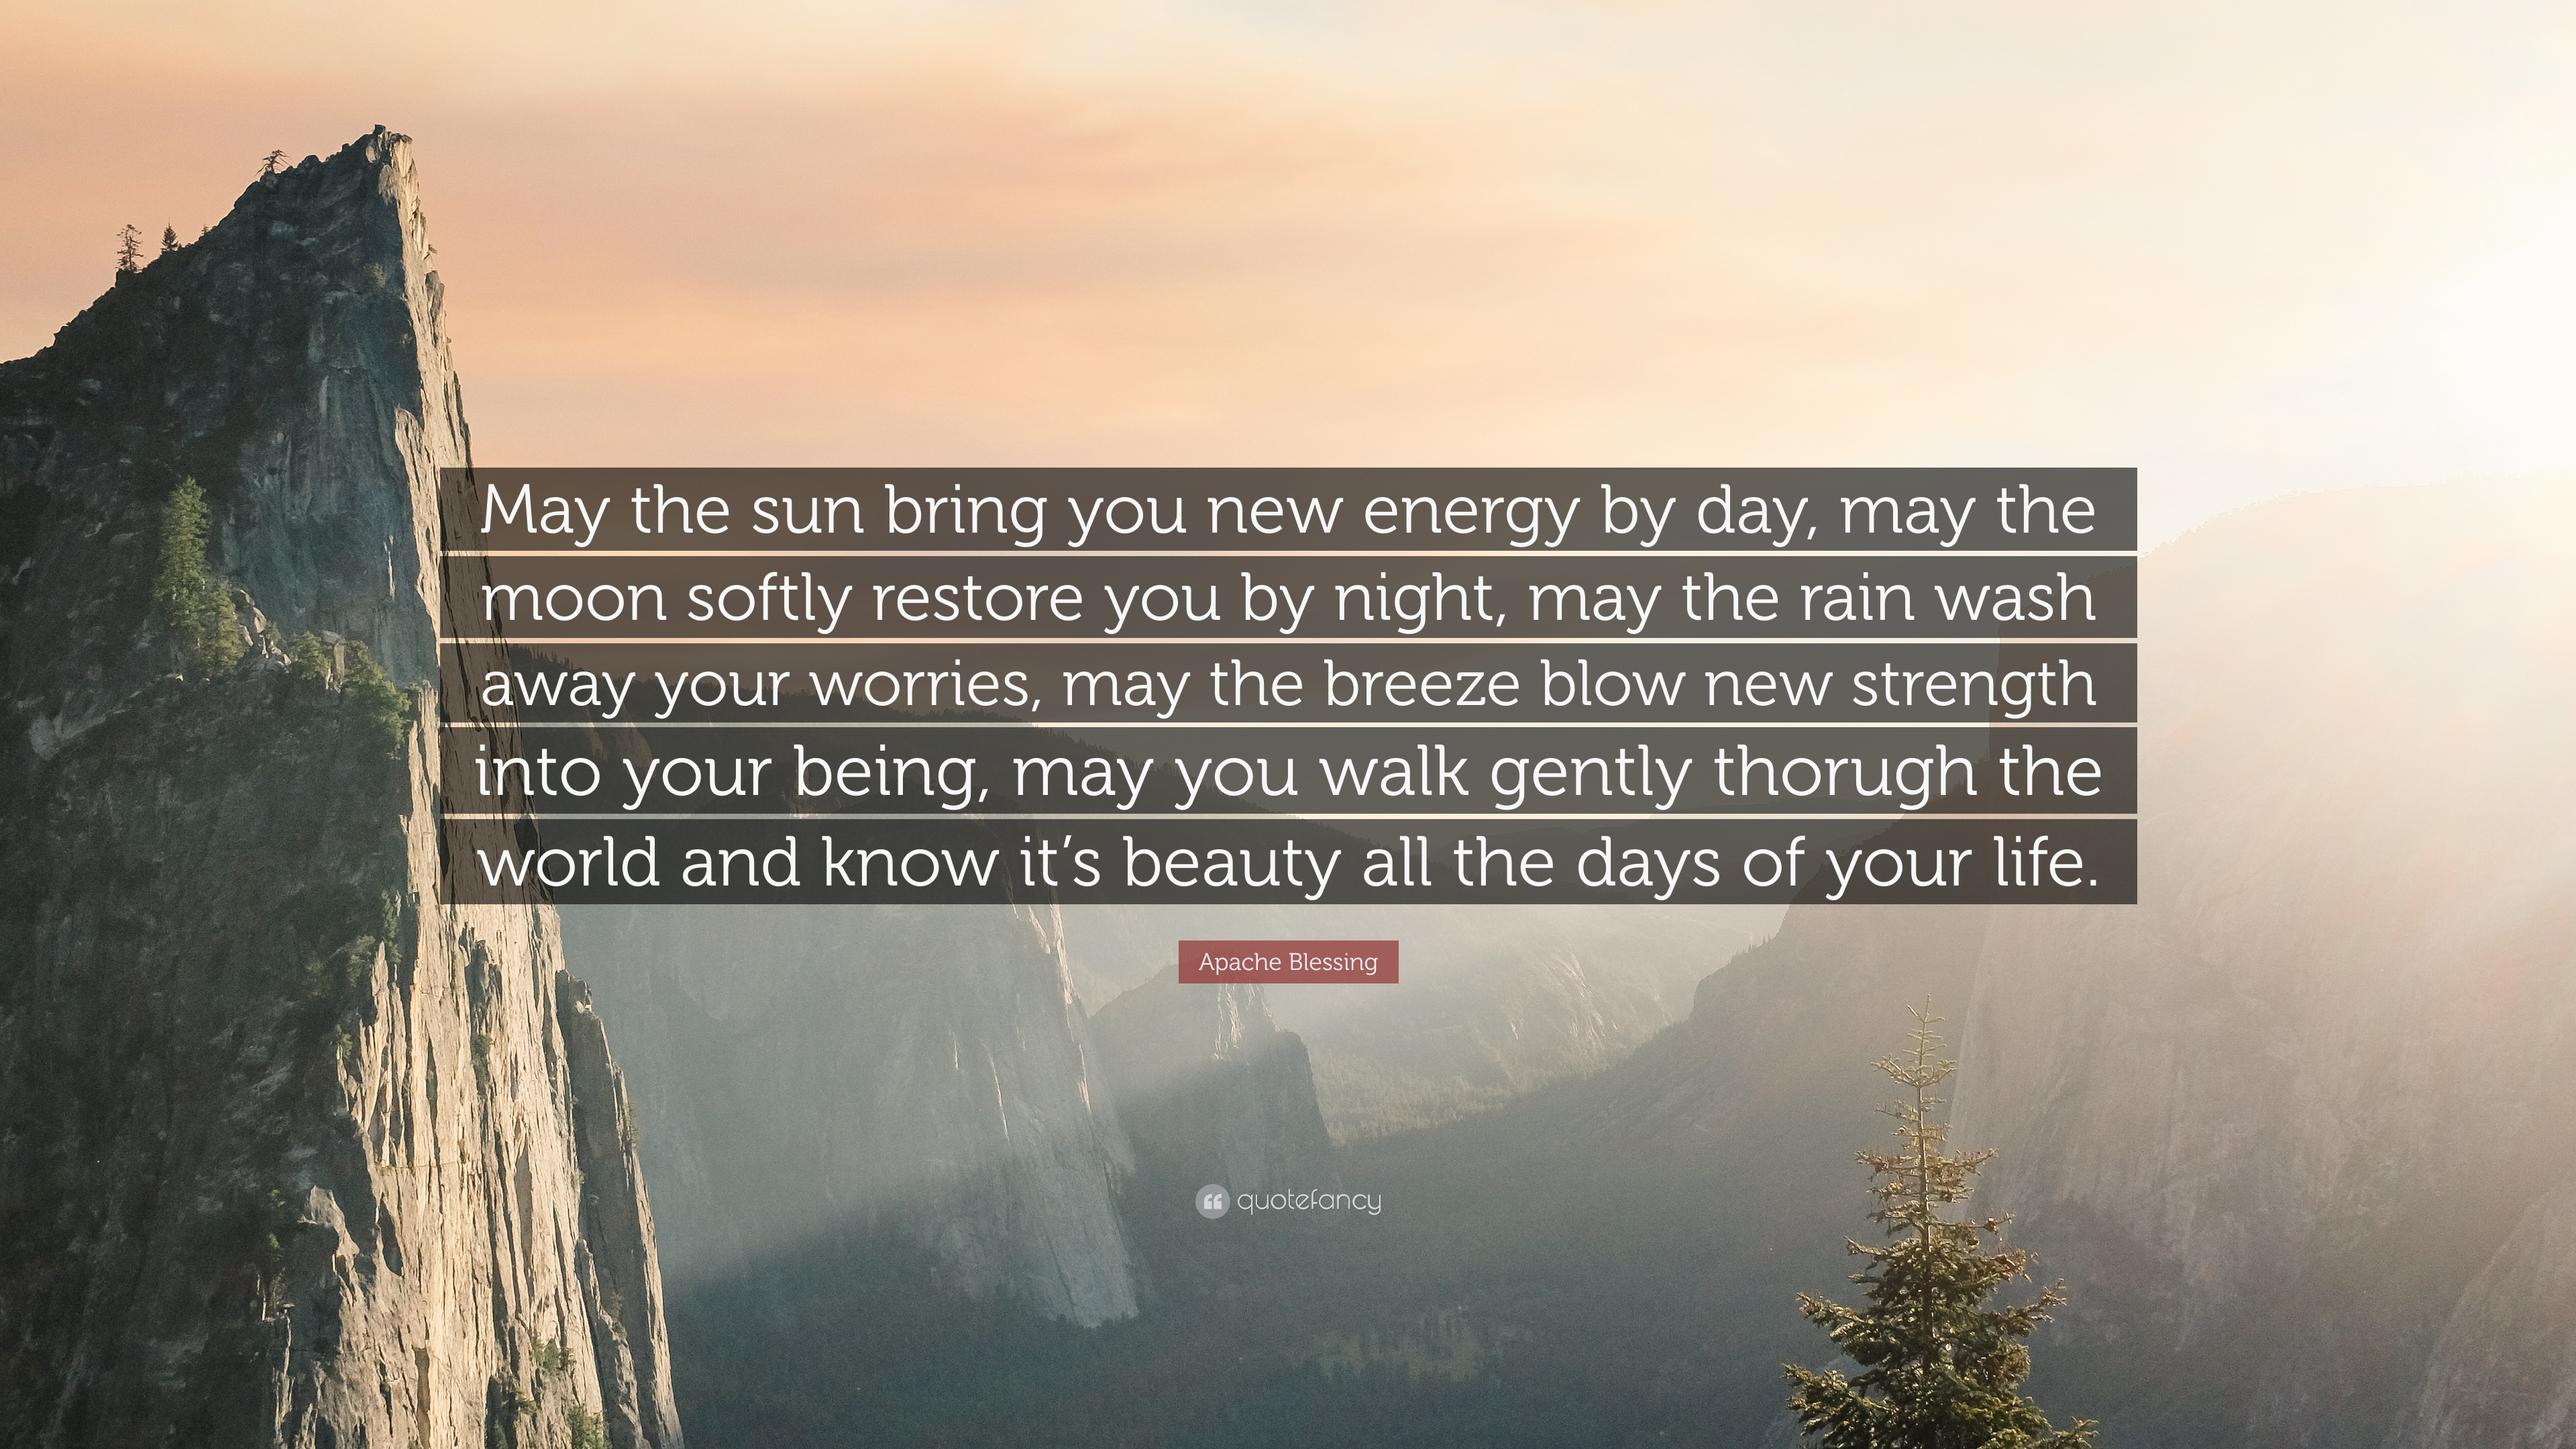 Apache Blessing Quote May The Sun Bring You New Energy By Day May